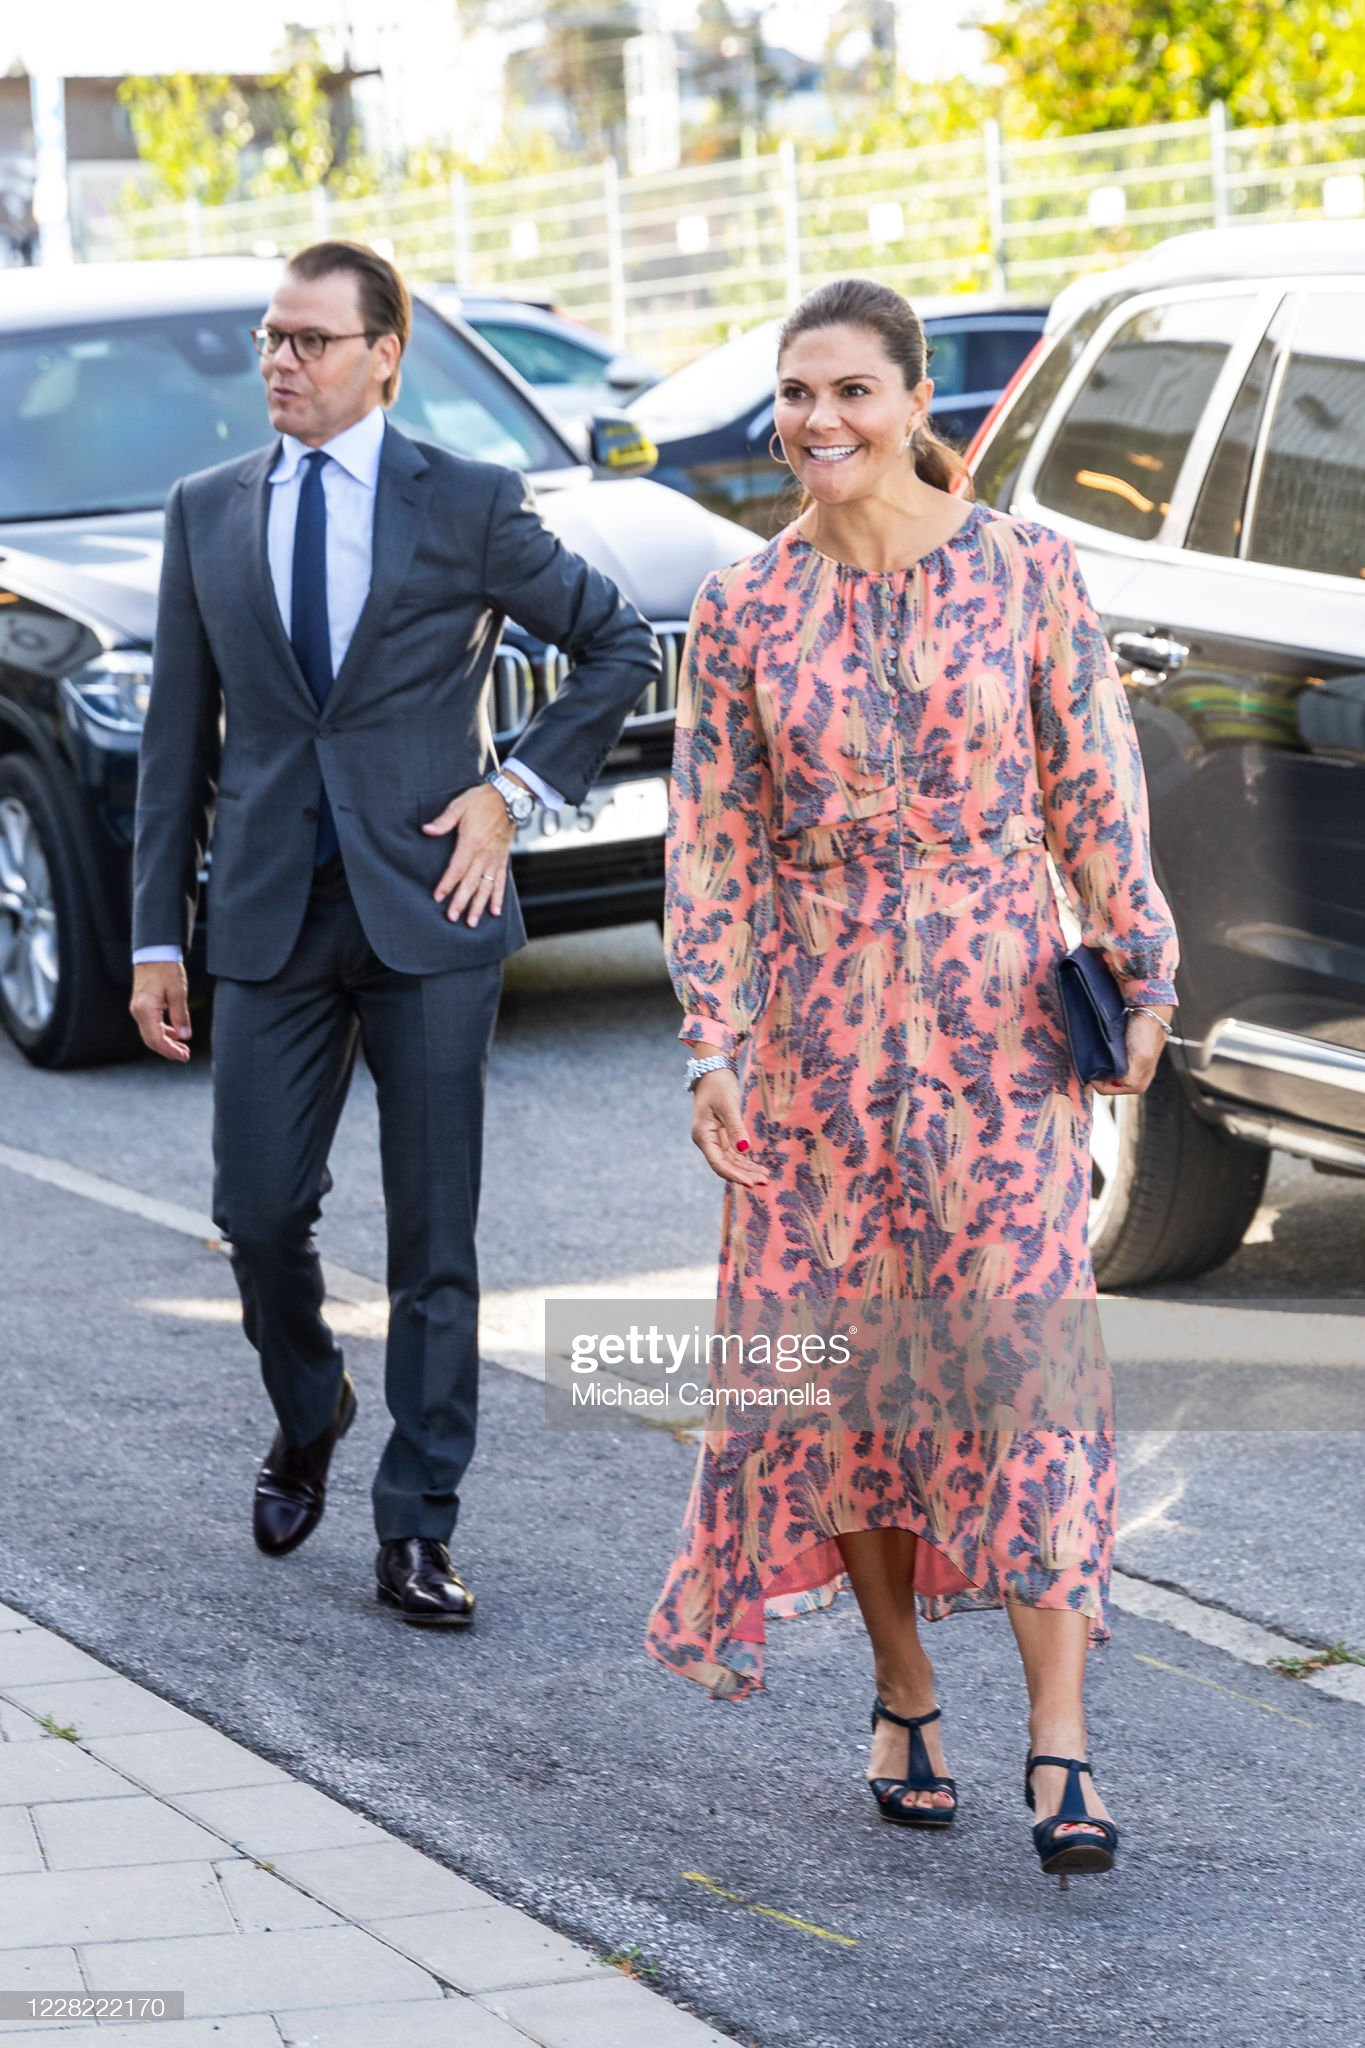 crown-princess-victoria-and-prince-daniel-of-sweden-visit-an-station-picture-id1228222170